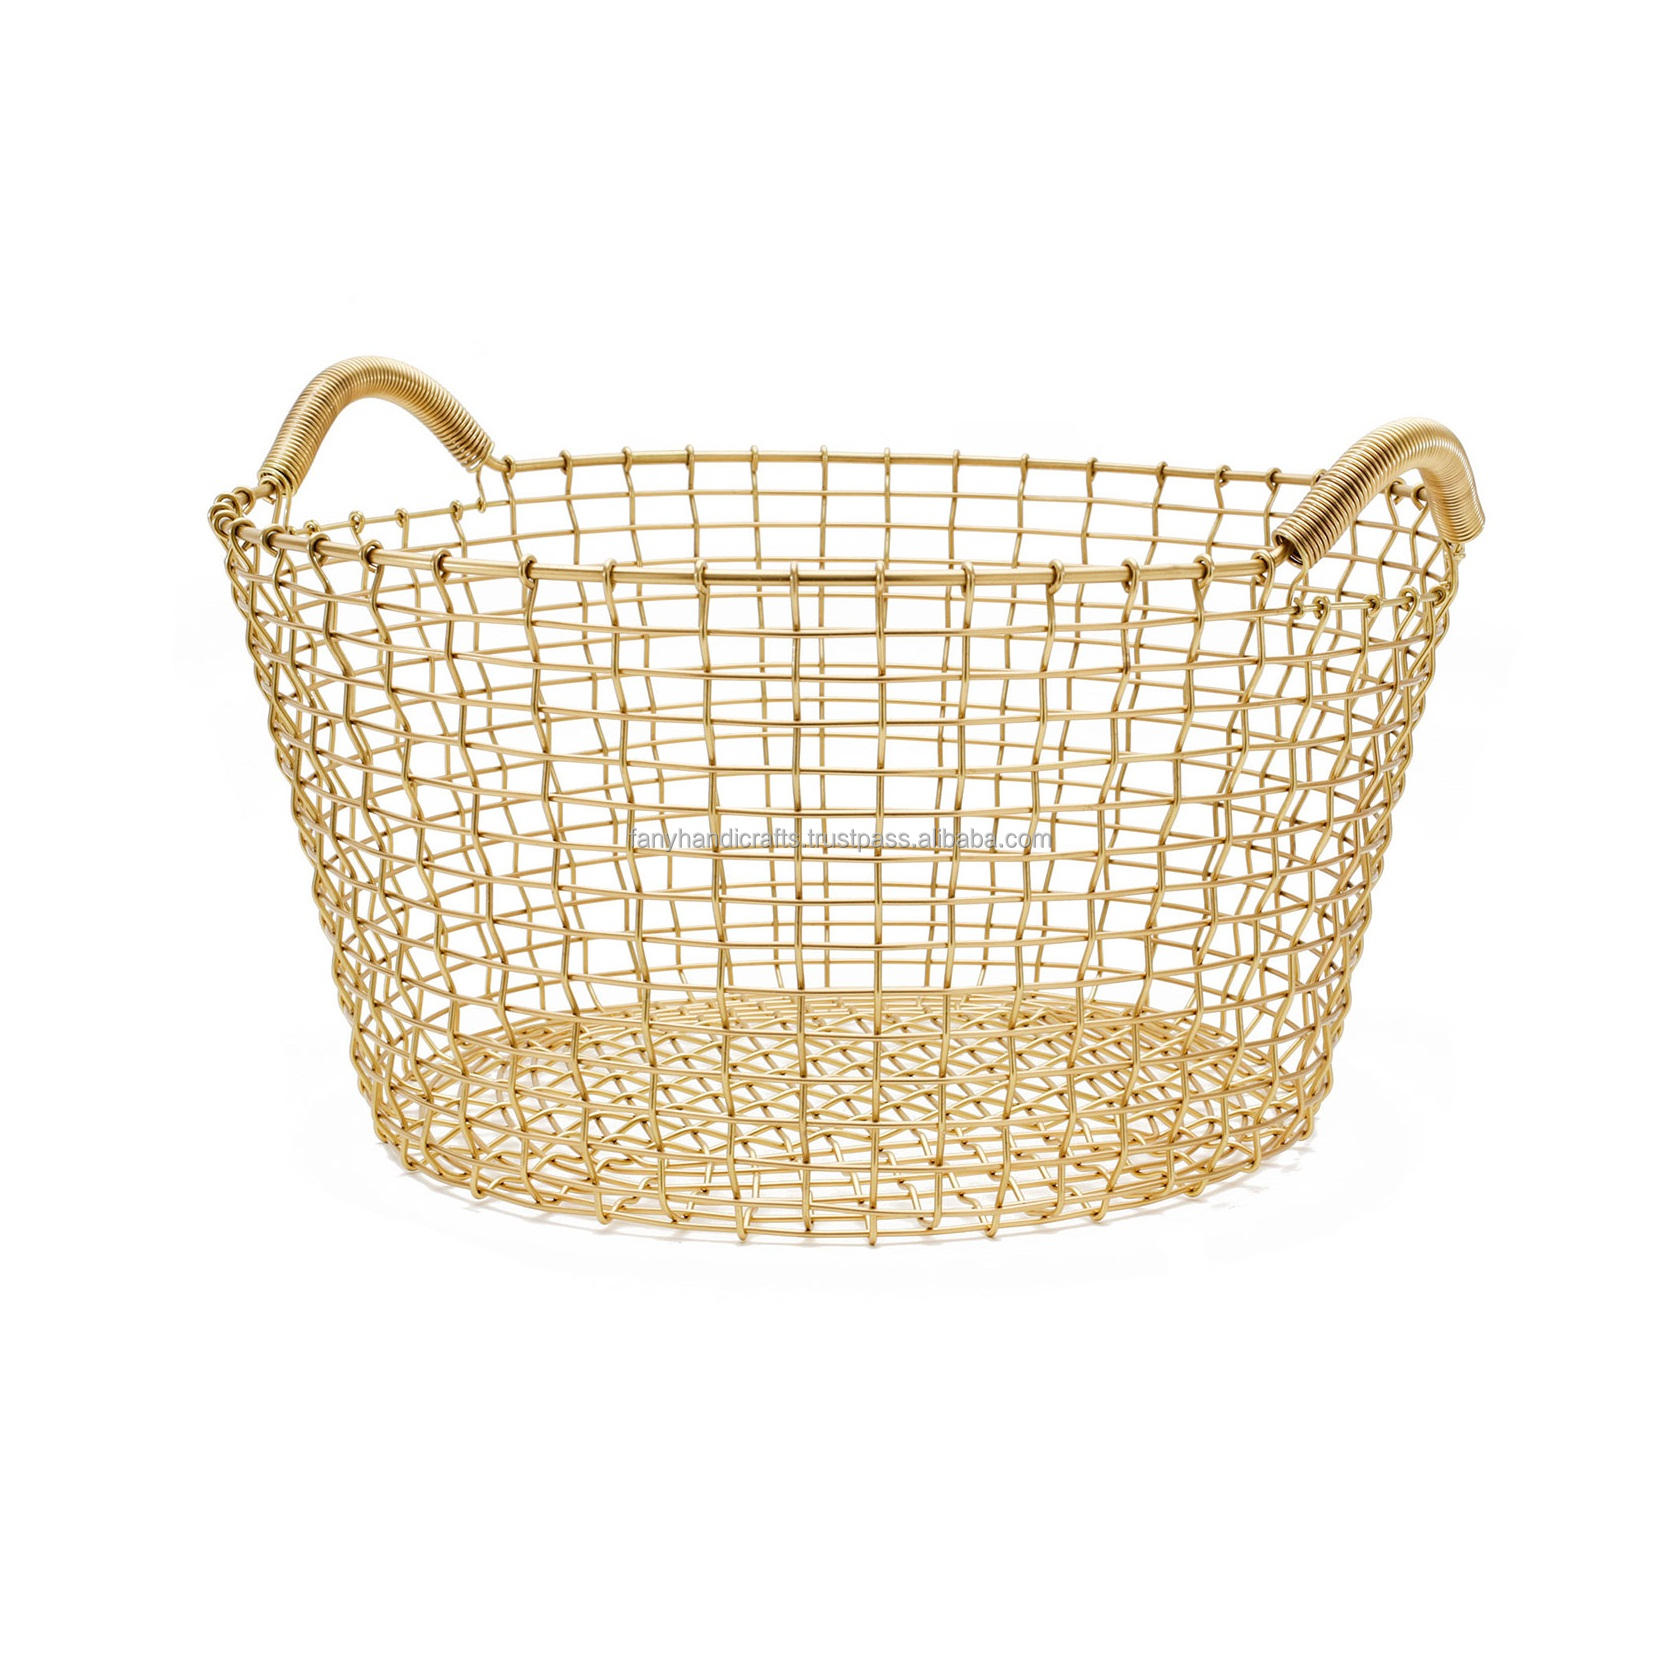 Home Decor Metal Wire Storage Basket